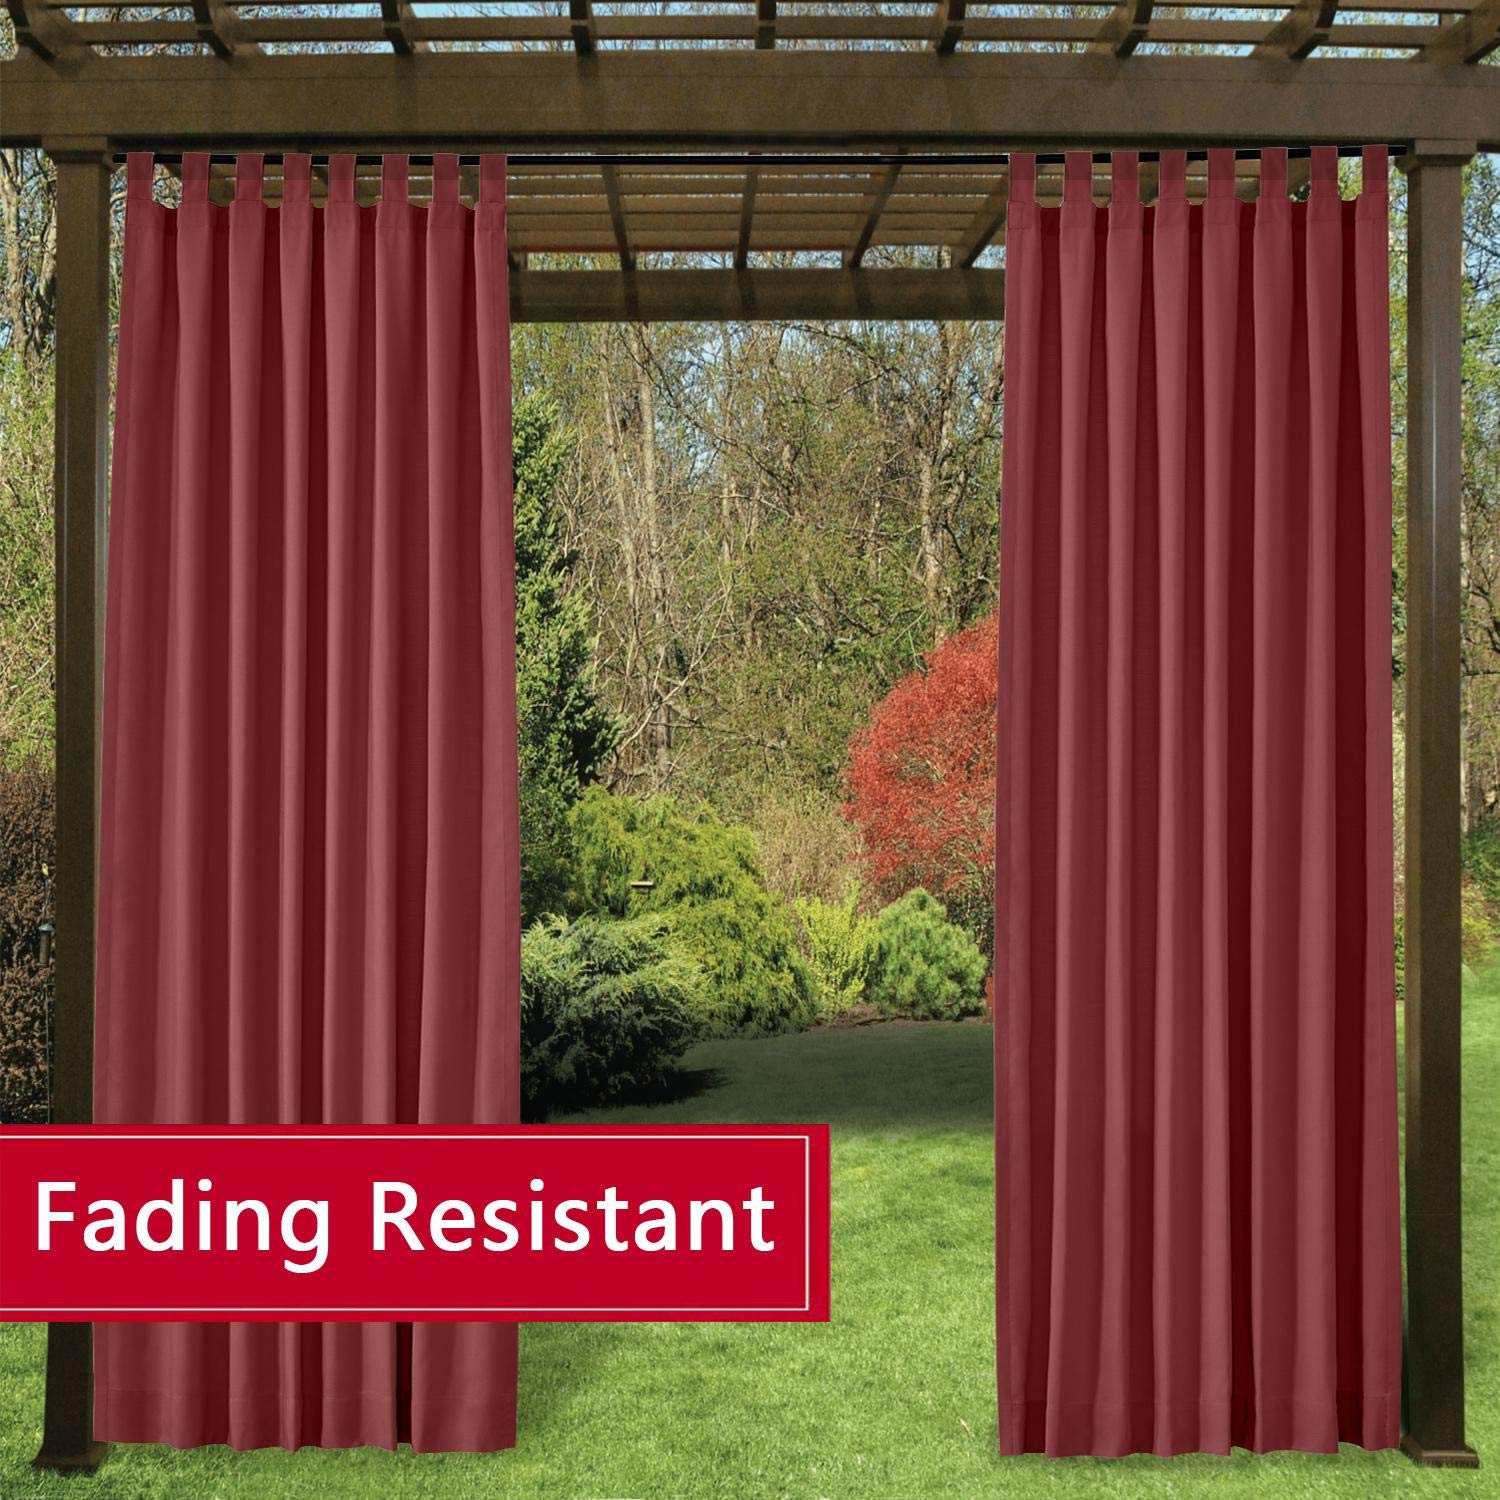 TWOPAGES Burgundy Outdoor Curtains Waterproof Tab Top Curtains for Front Porch Fade Resistant Curtains (72 Inch Width by 84 Inch Long, 1 Panel)